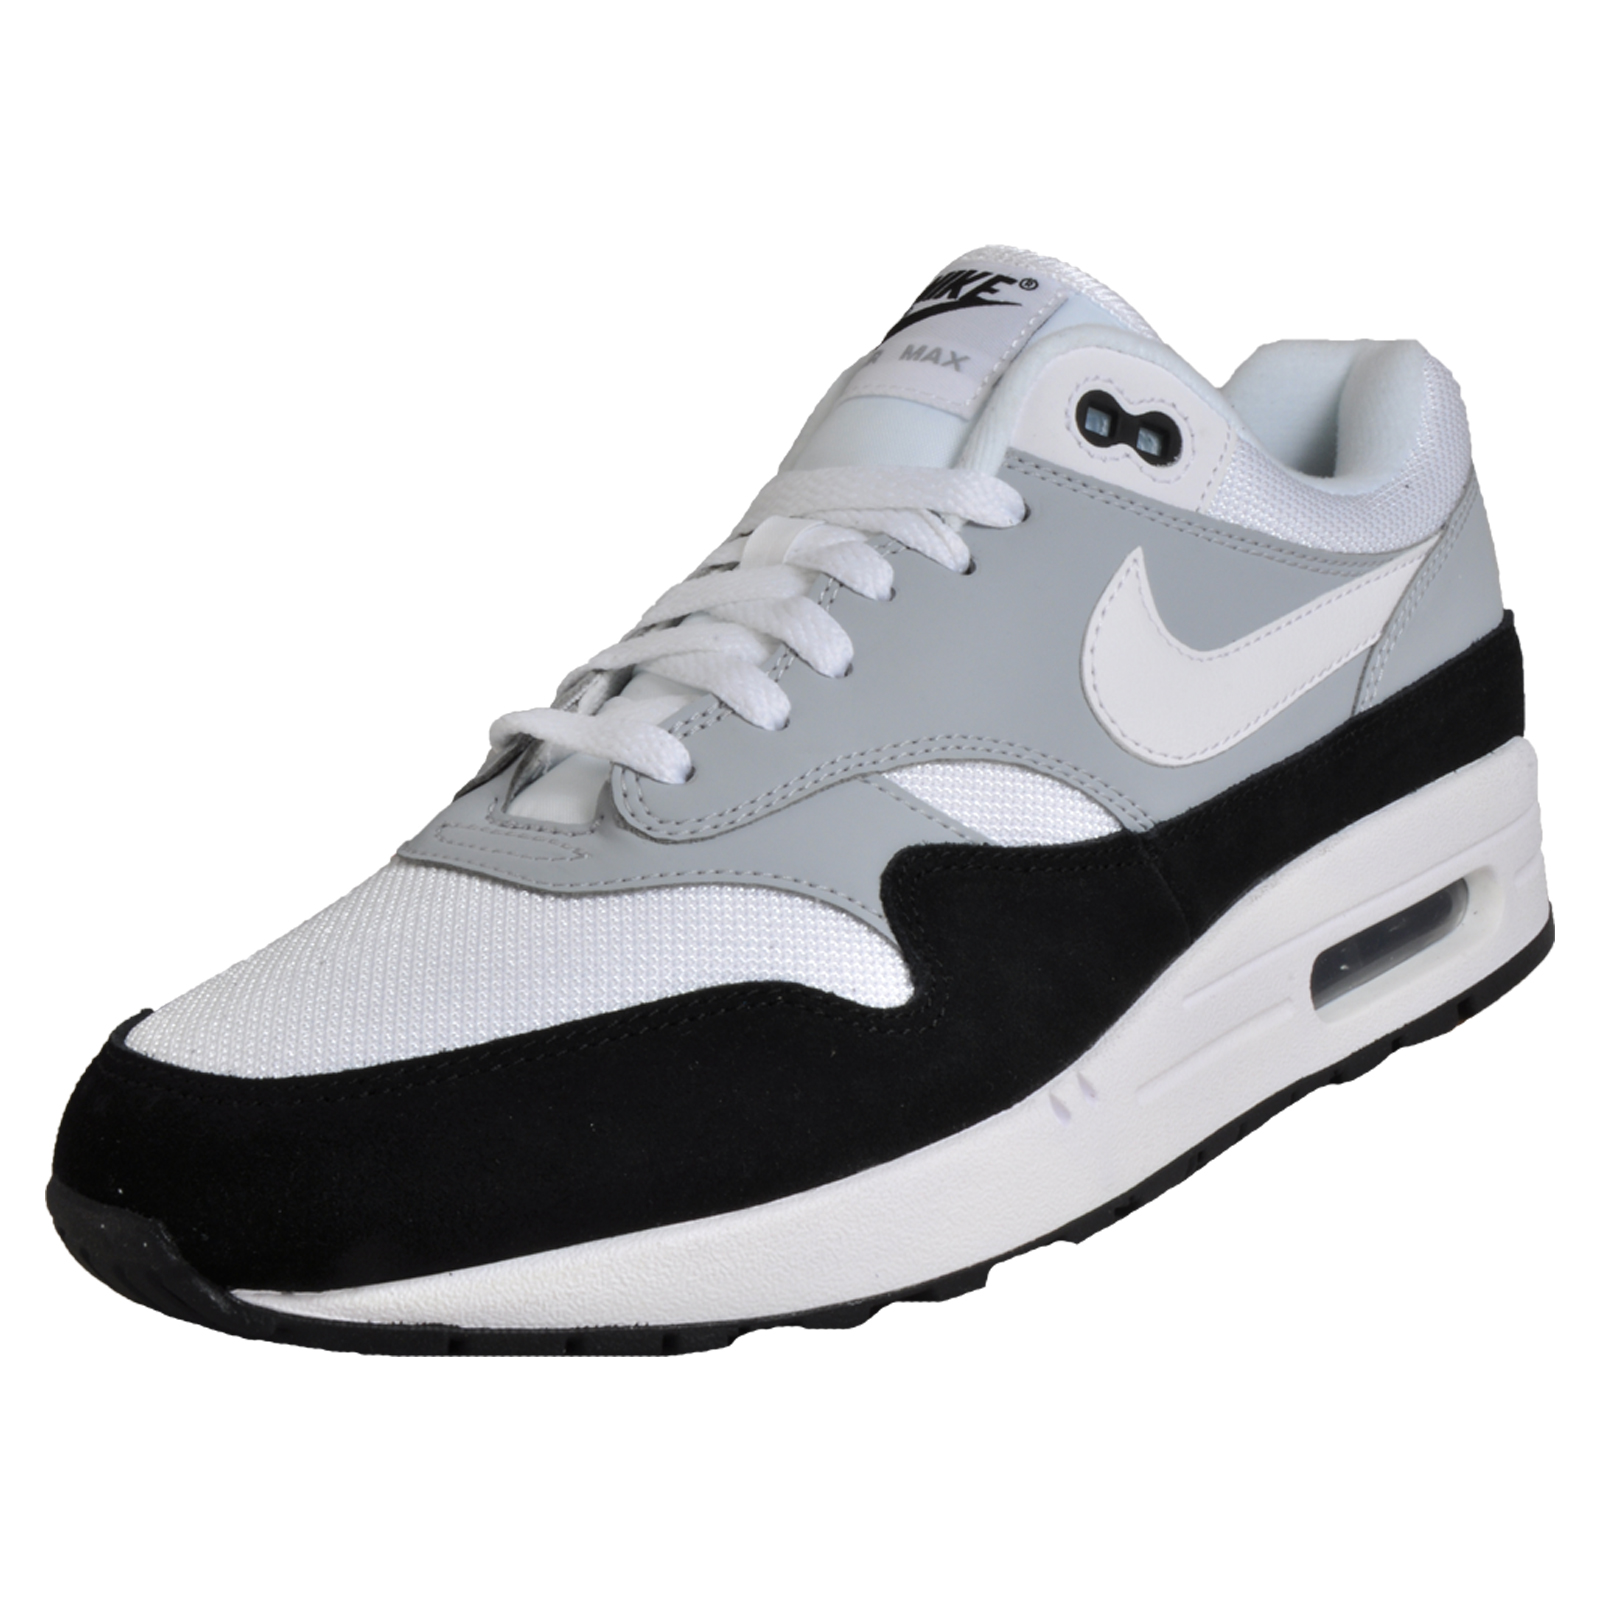 f00242e3a7 Details about Nike Air Max 1 Premium Men's Casual Retro Sneakers Trainers